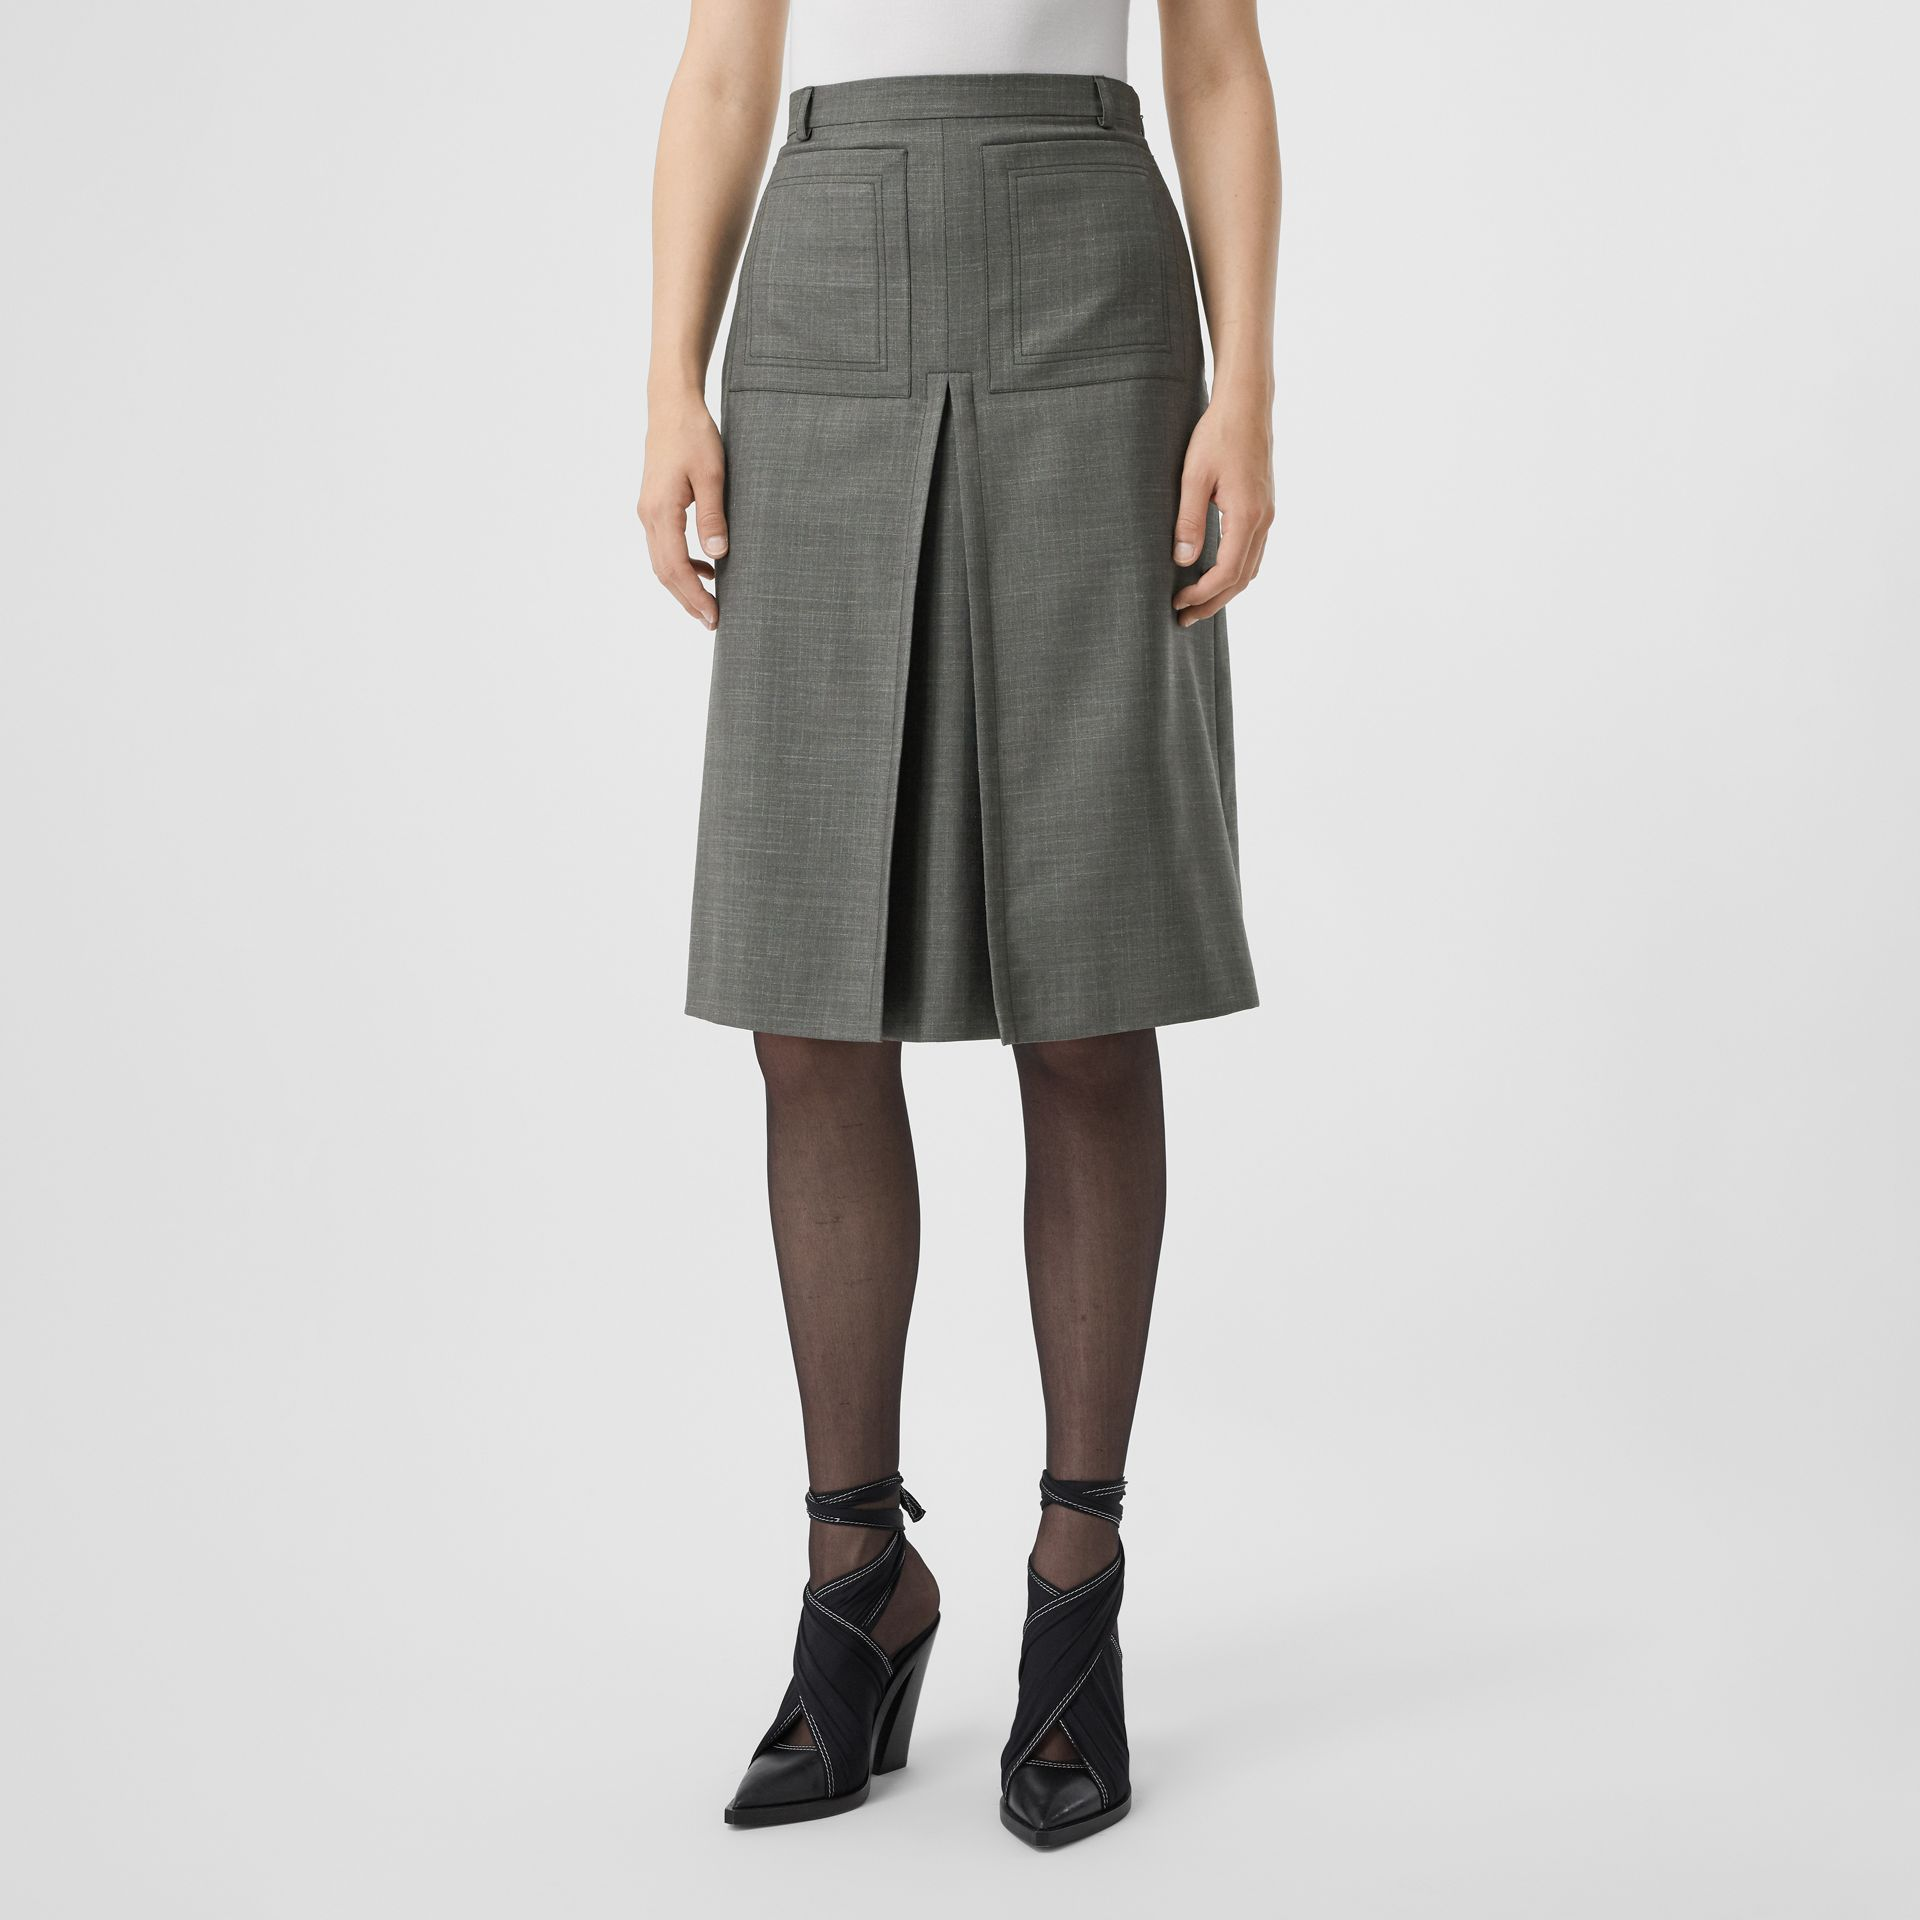 Box-pleat Detail Wool Silk Blend A-line Skirt in Charcoal Grey - Women | Burberry - gallery image 4